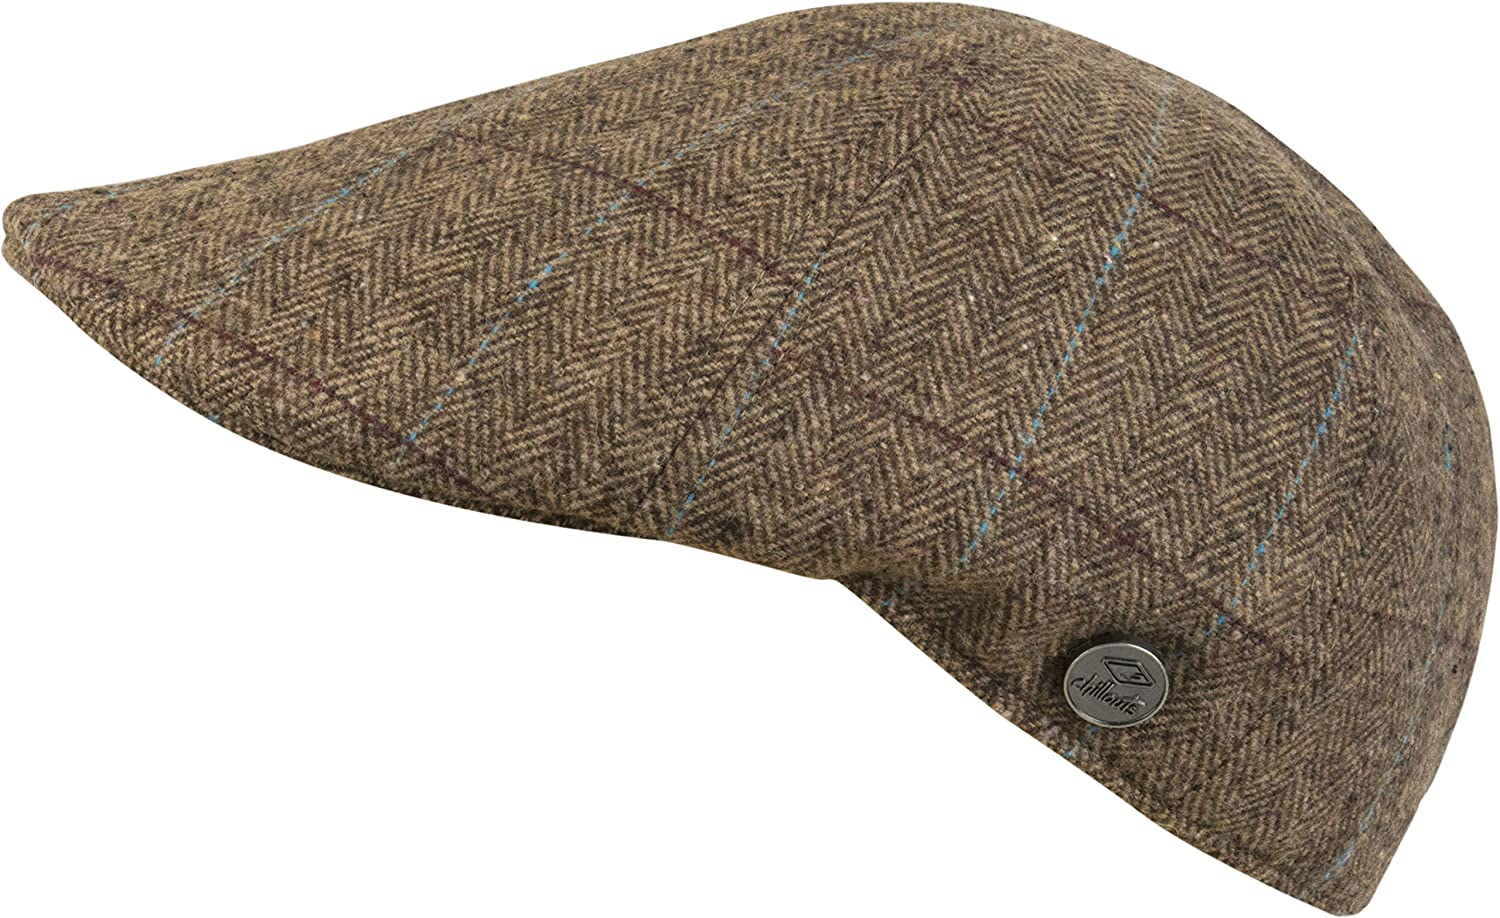 CHILLOUTS Mens Flat Cap One Size